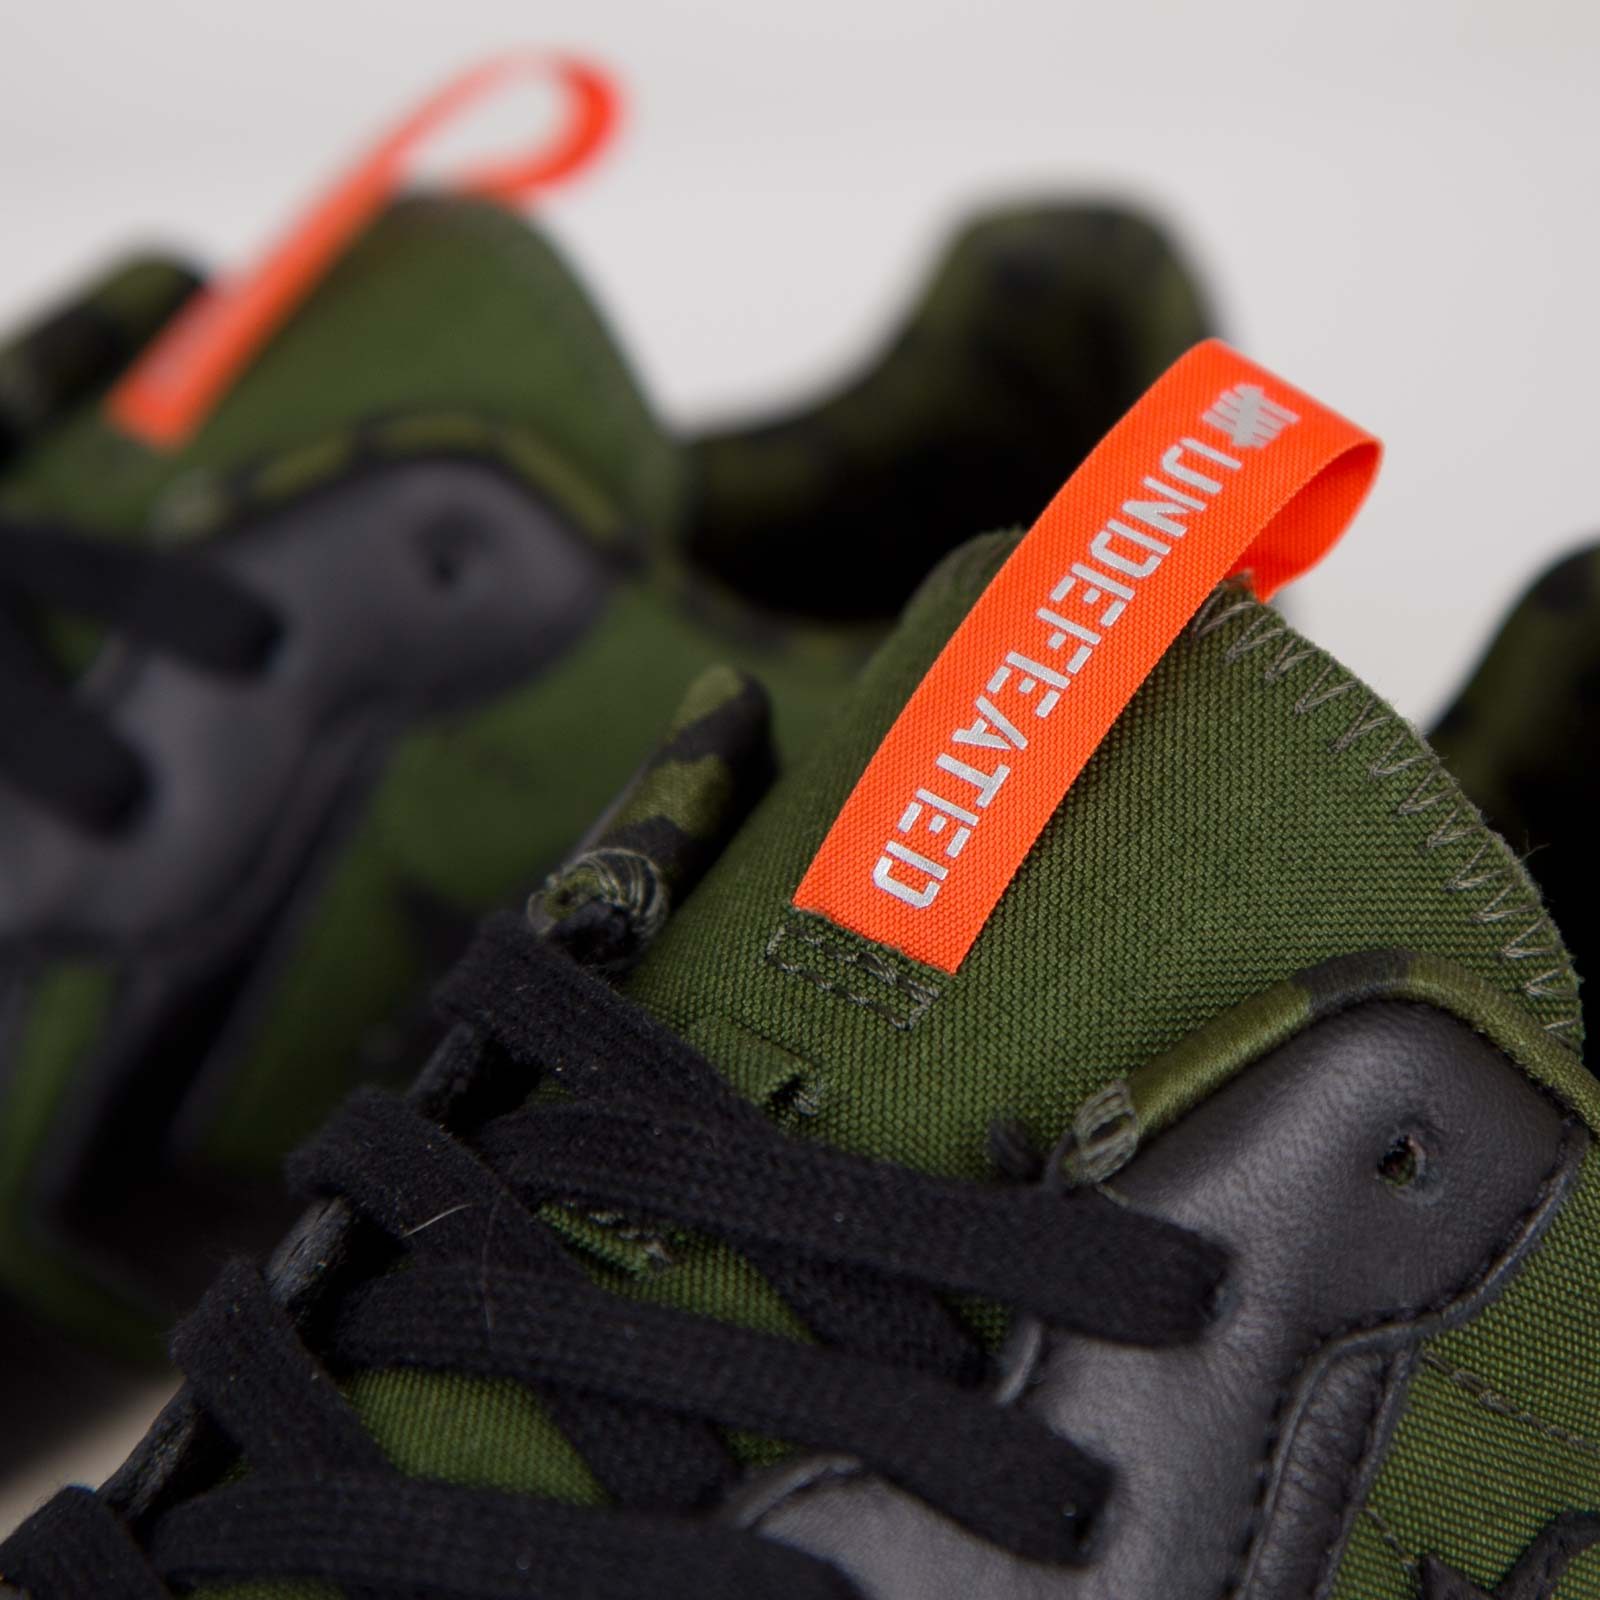 Converse Auckland Racer Ox - 143293c - SNS   sneakers & streetwear ...